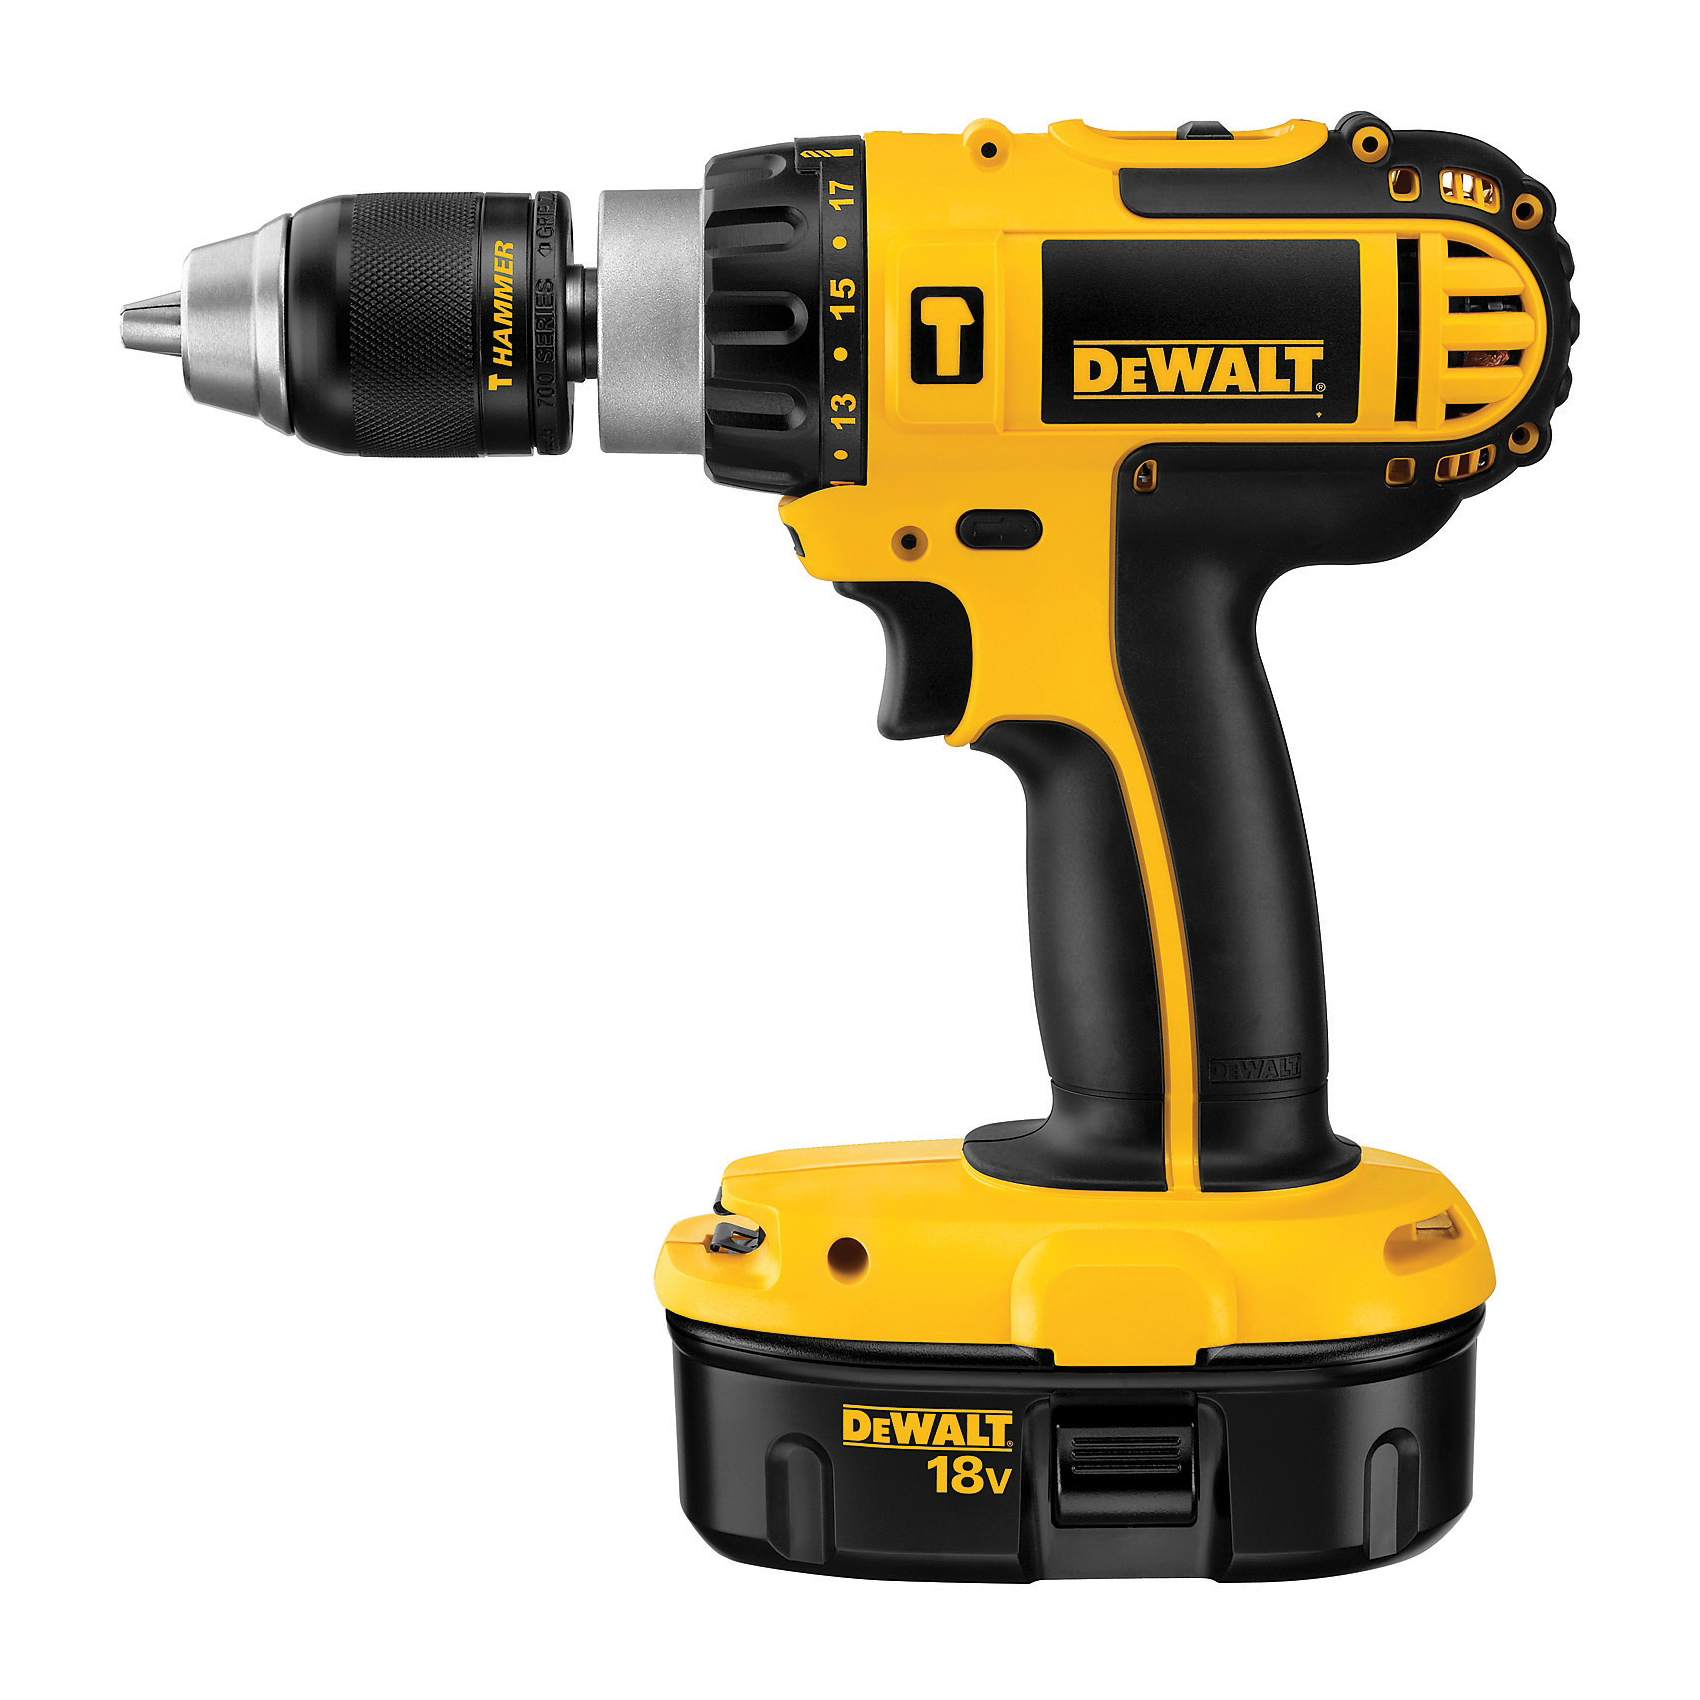 DeWALT® DC725KA Compact Cordless Hammer Drill Kit, 1/2 in Metal Ratcheting Chuck, 18 VDC, 0 to 500 rpm/0 to 1700 rpm No-Load, Ni-Cd Battery